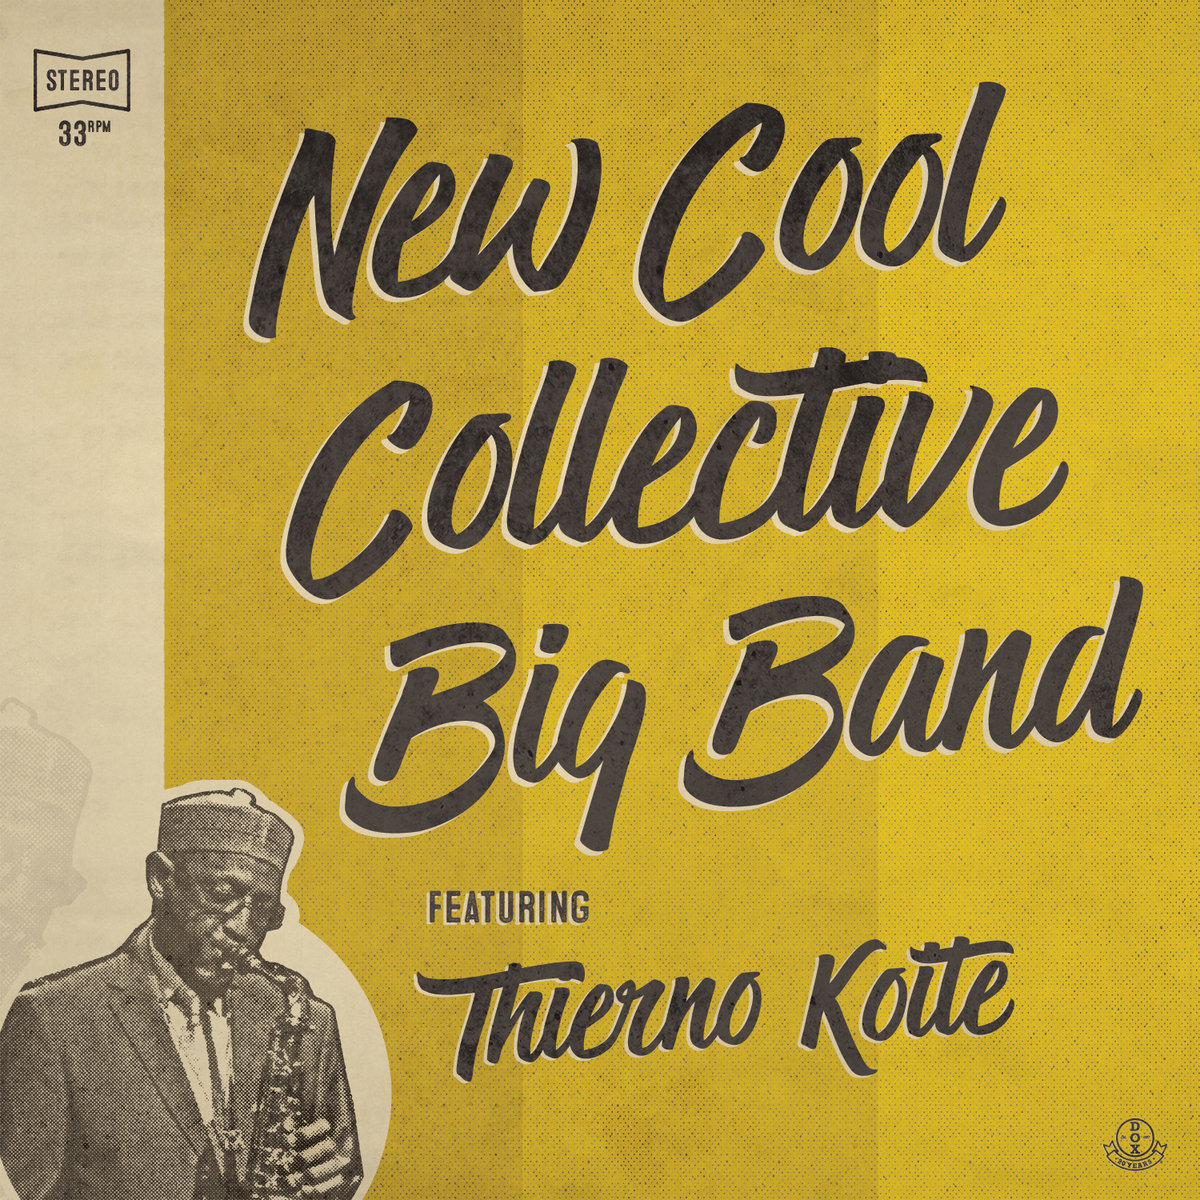 New cool collective big band featuring thierno koit new cool by new cool collective big band featuring thierno koit malvernweather Image collections